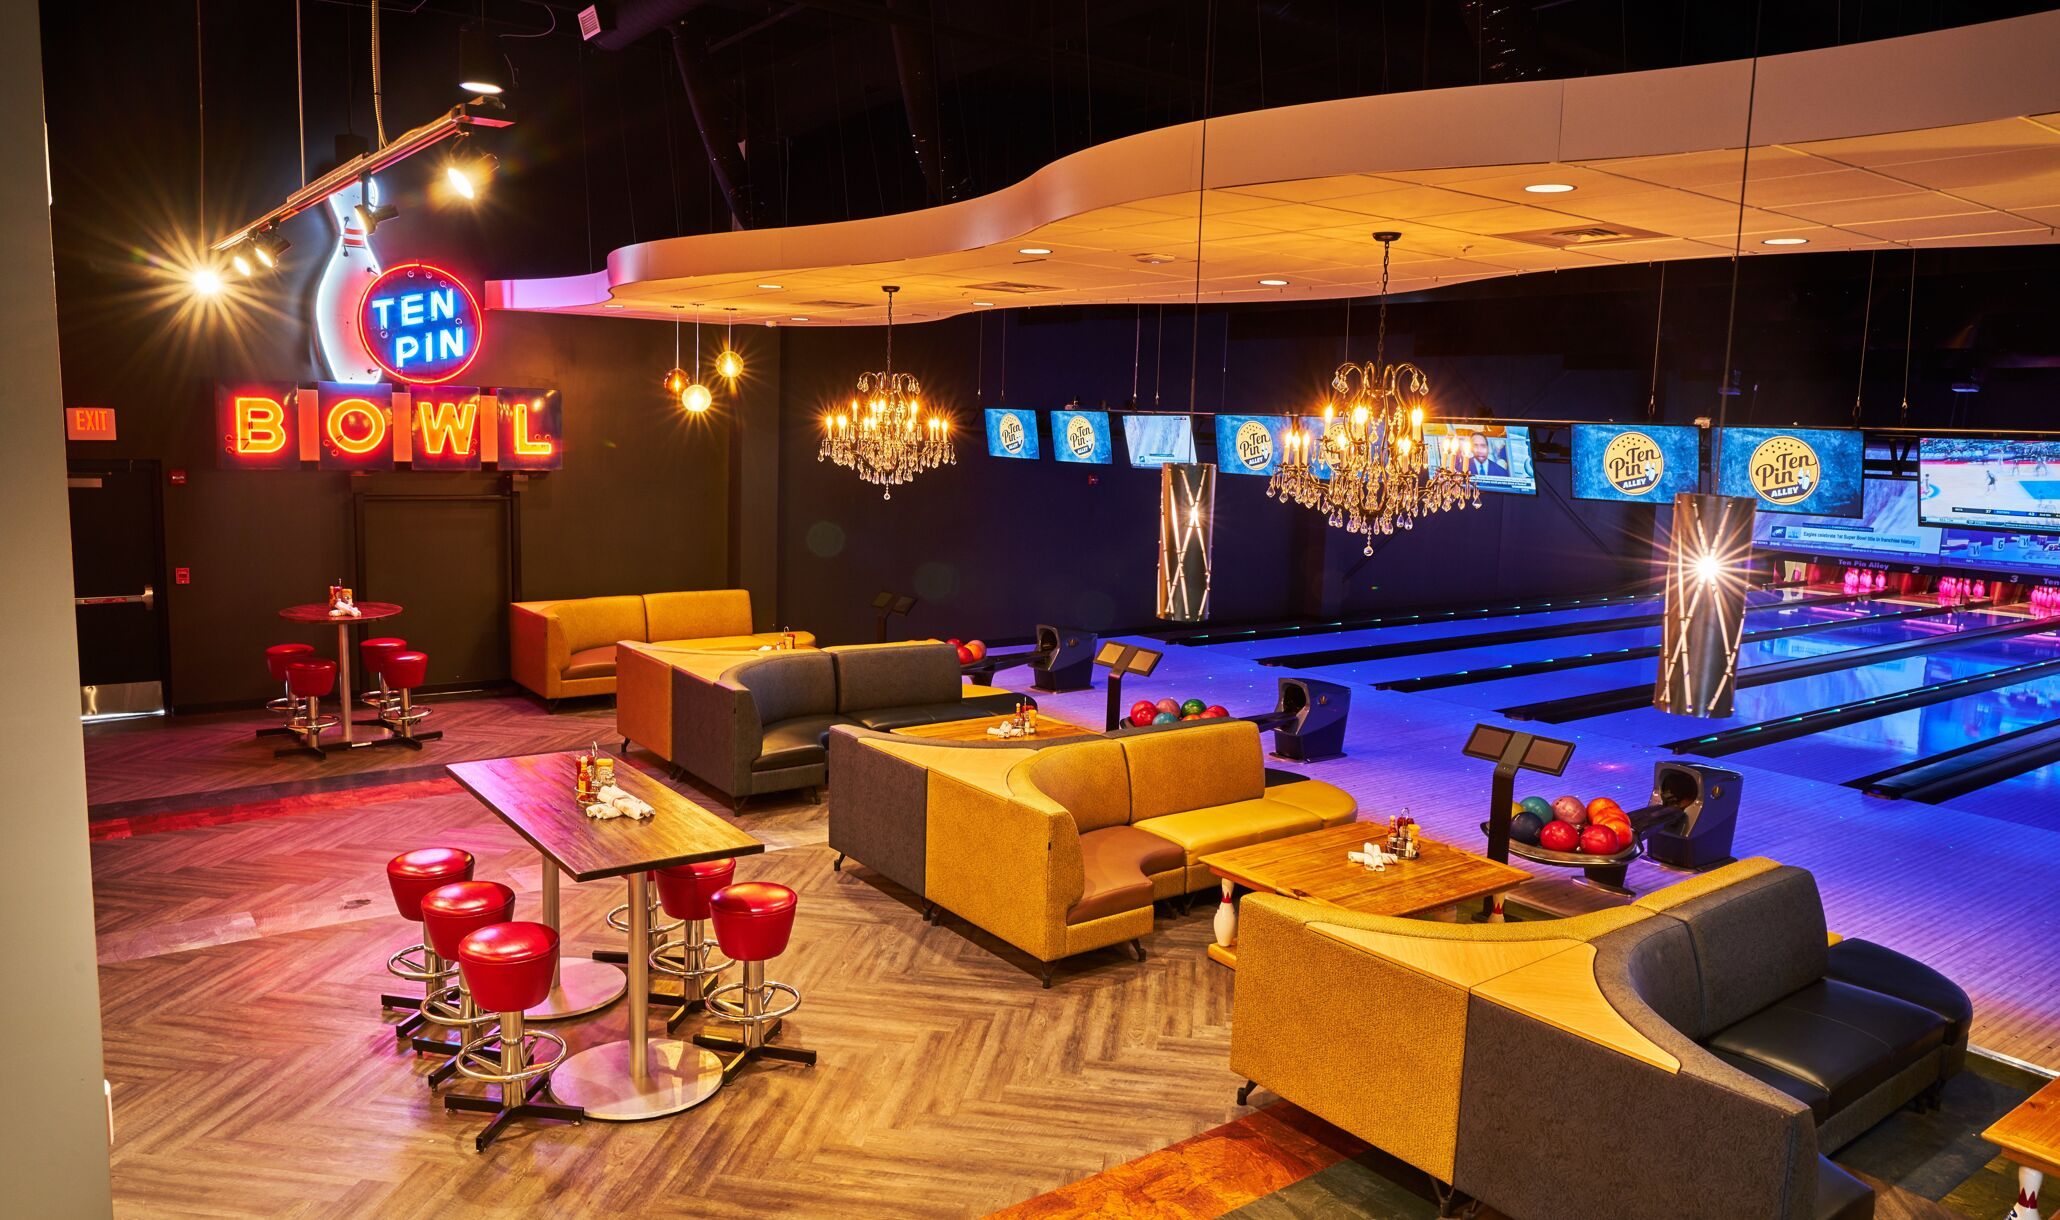 Ten Pin Alley Oh Vip 20180208 9383-2